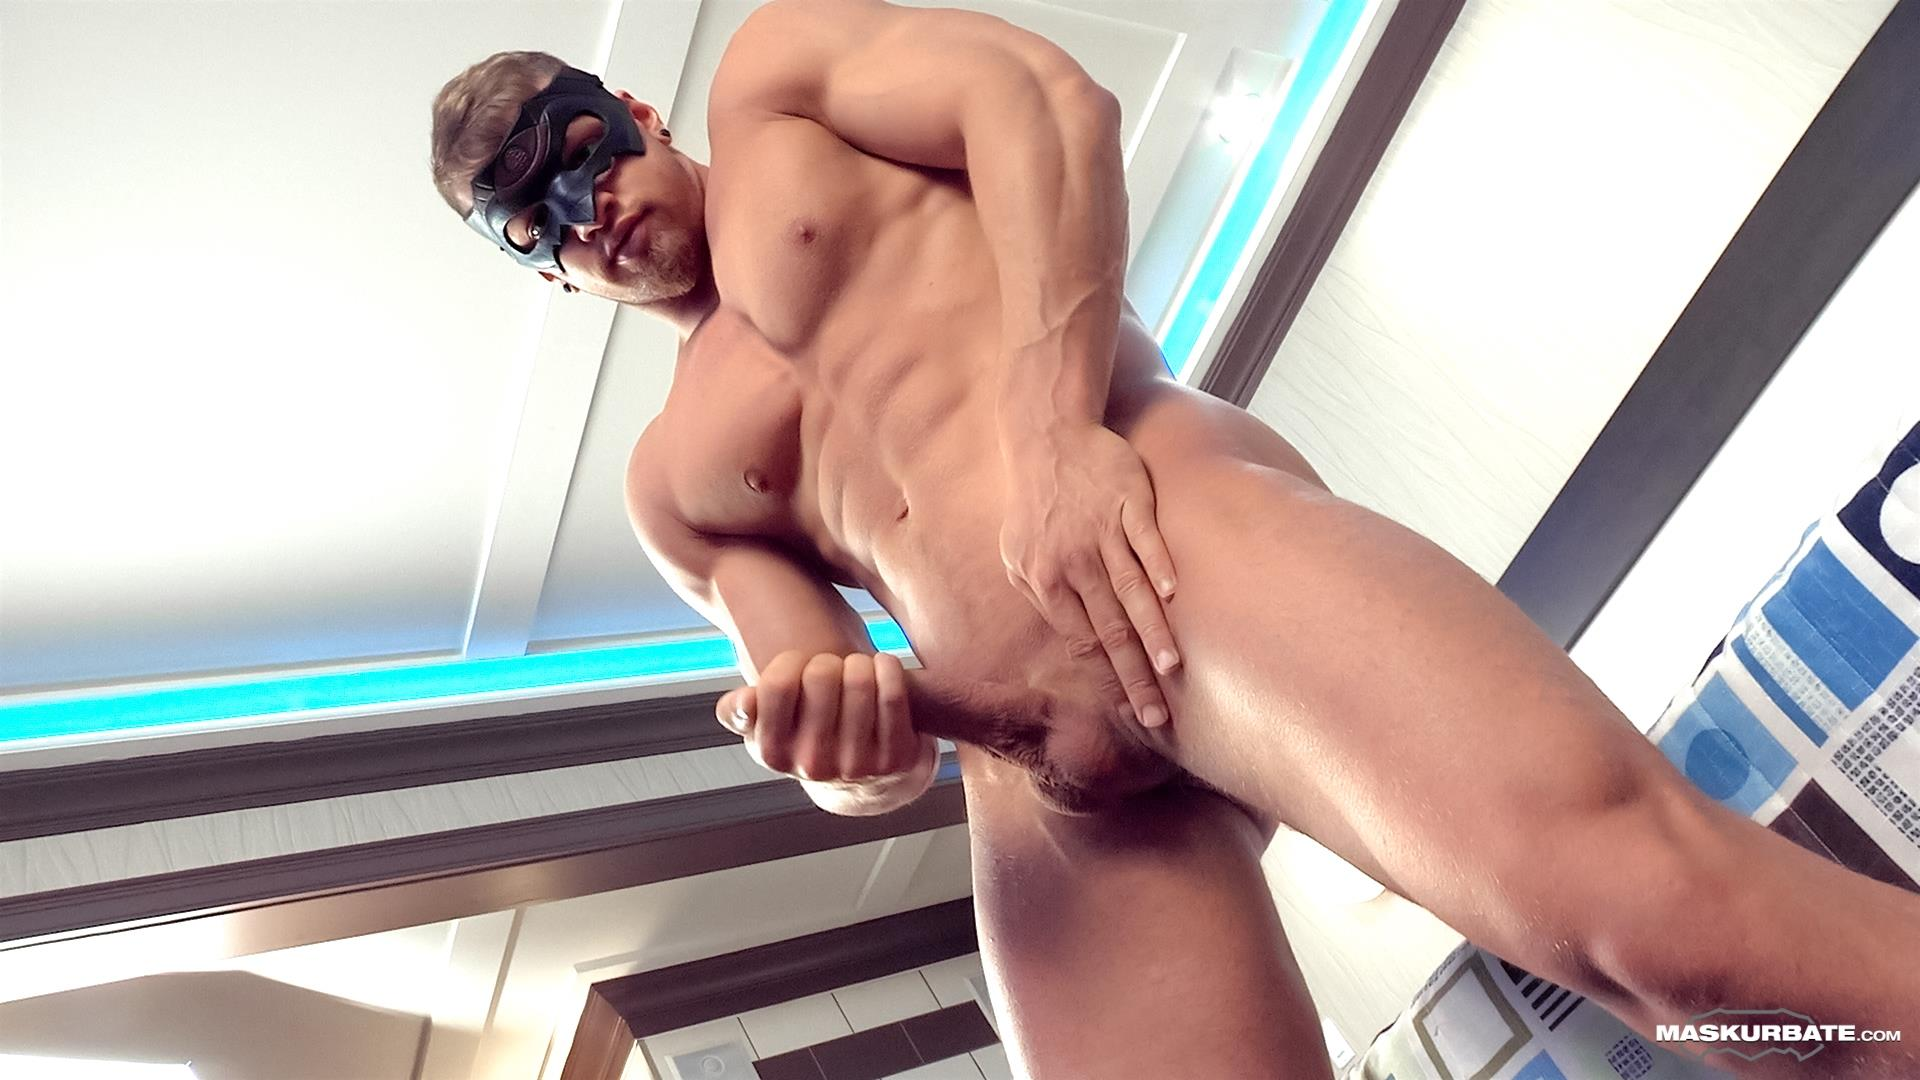 Maskurbate-Pascal-and-Brad-Straight-Muscle-Hunk-With-A-Big-Uncut-Cock-Jerking-His-Cock-Amateur-Gay-Porn-11 Worshipping A Straight Muscle Hunk With A Big Uncut Cock